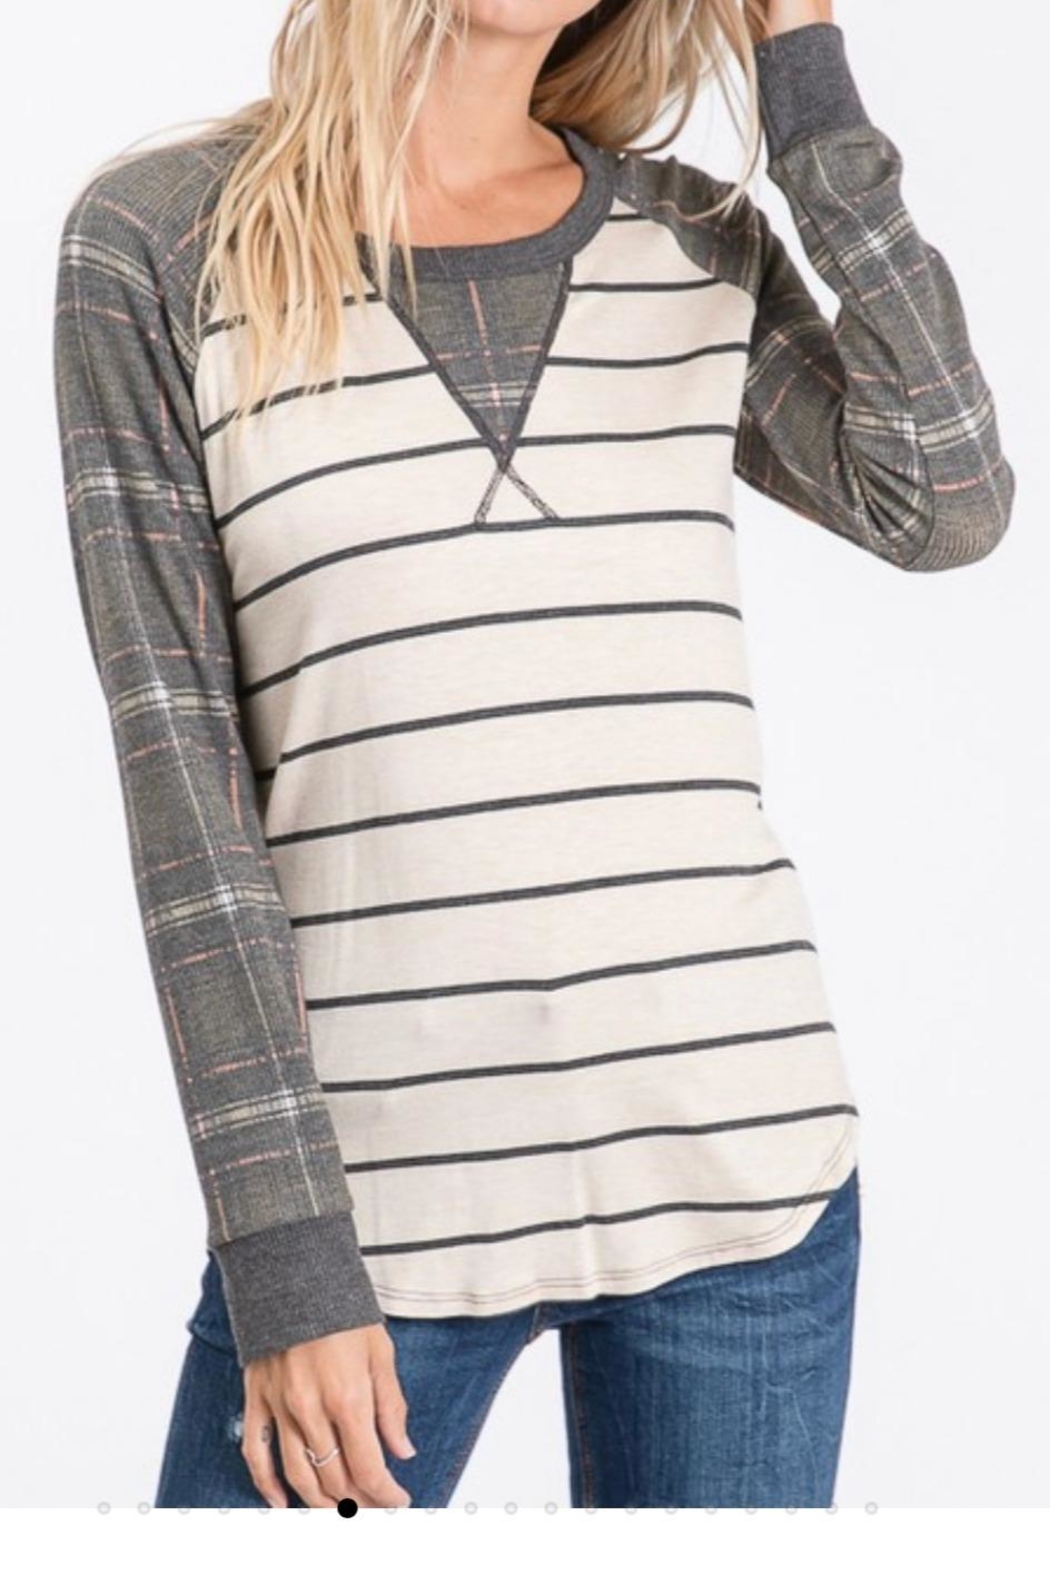 7th Ray Plaid Raglan-Sleeve Top - Front Cropped Image